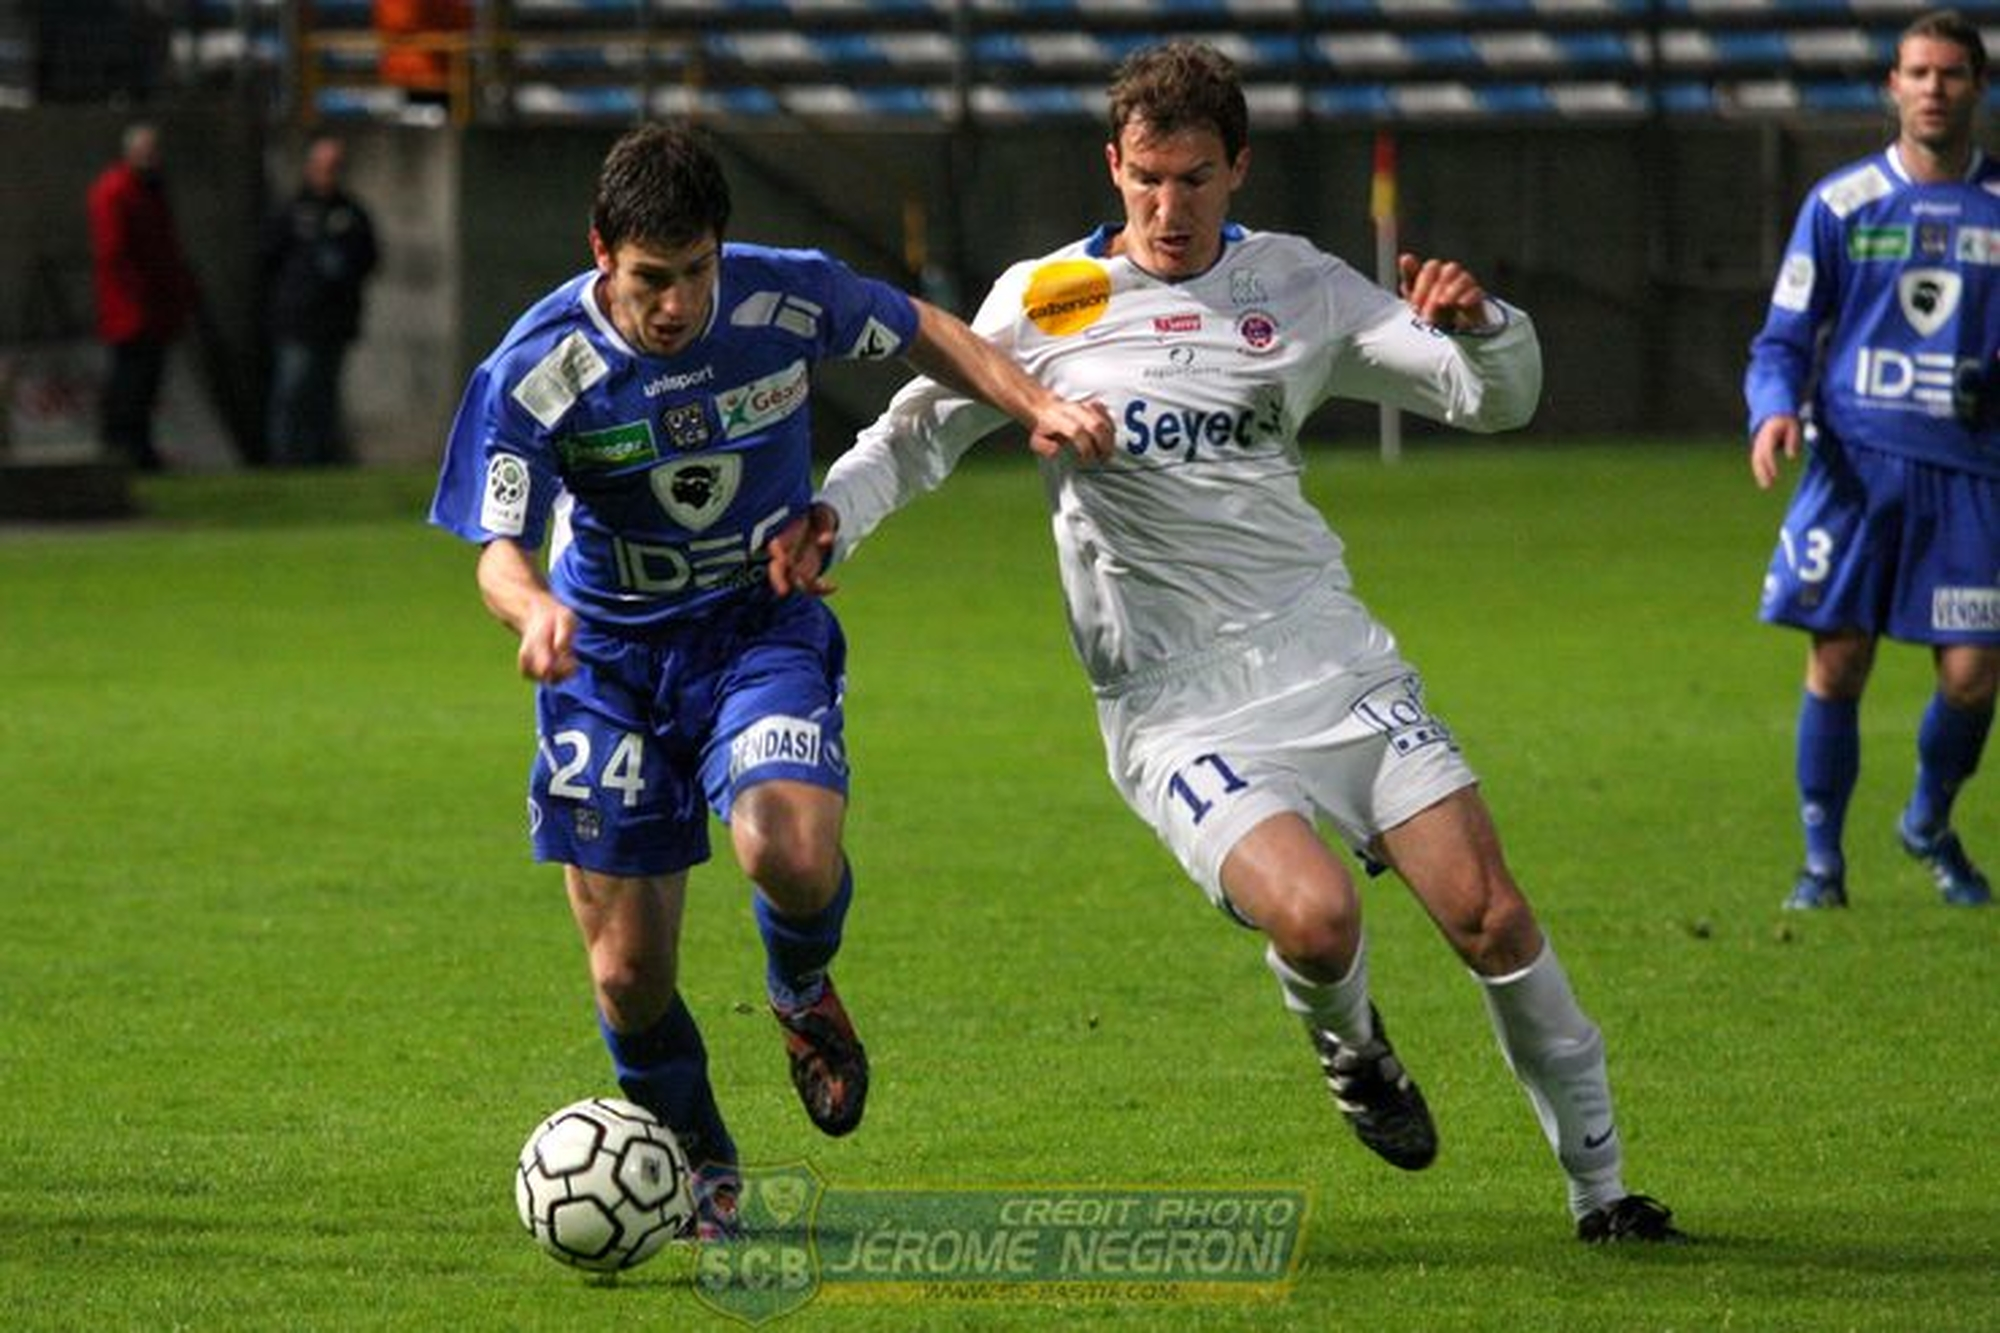 SCB/CHATEAUROUX (Ligue 2)